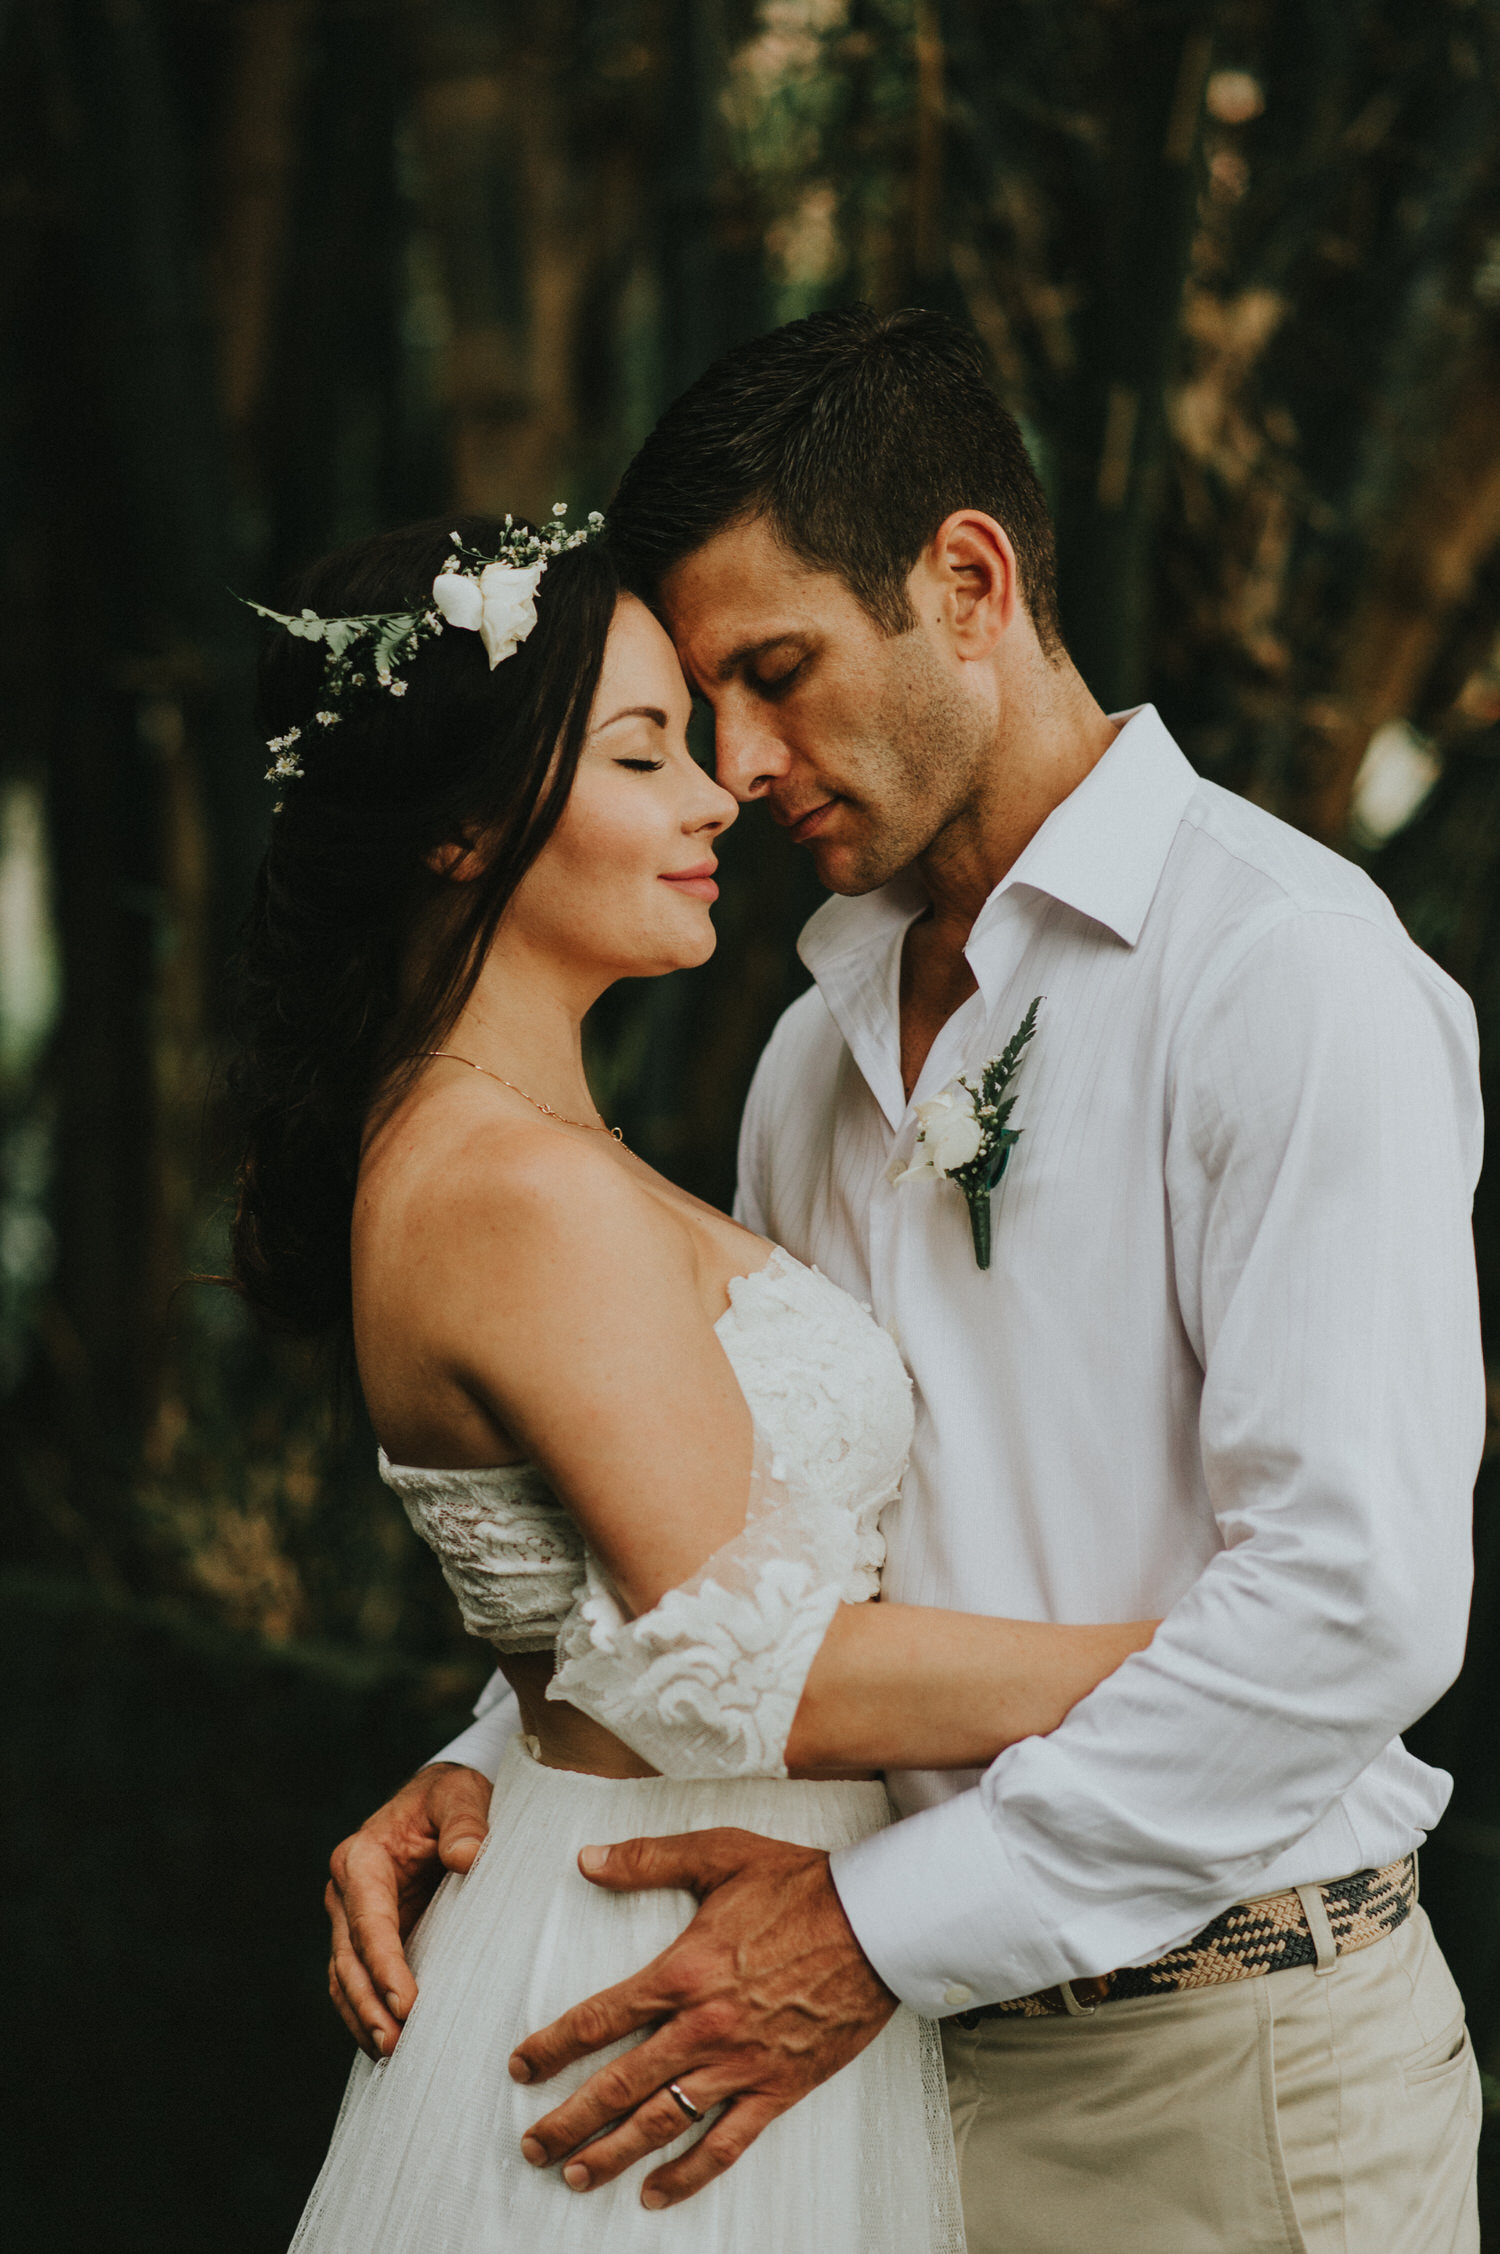 bali wedding - elopement - ubud wedding - diktatphotography - olga + Jason - 71